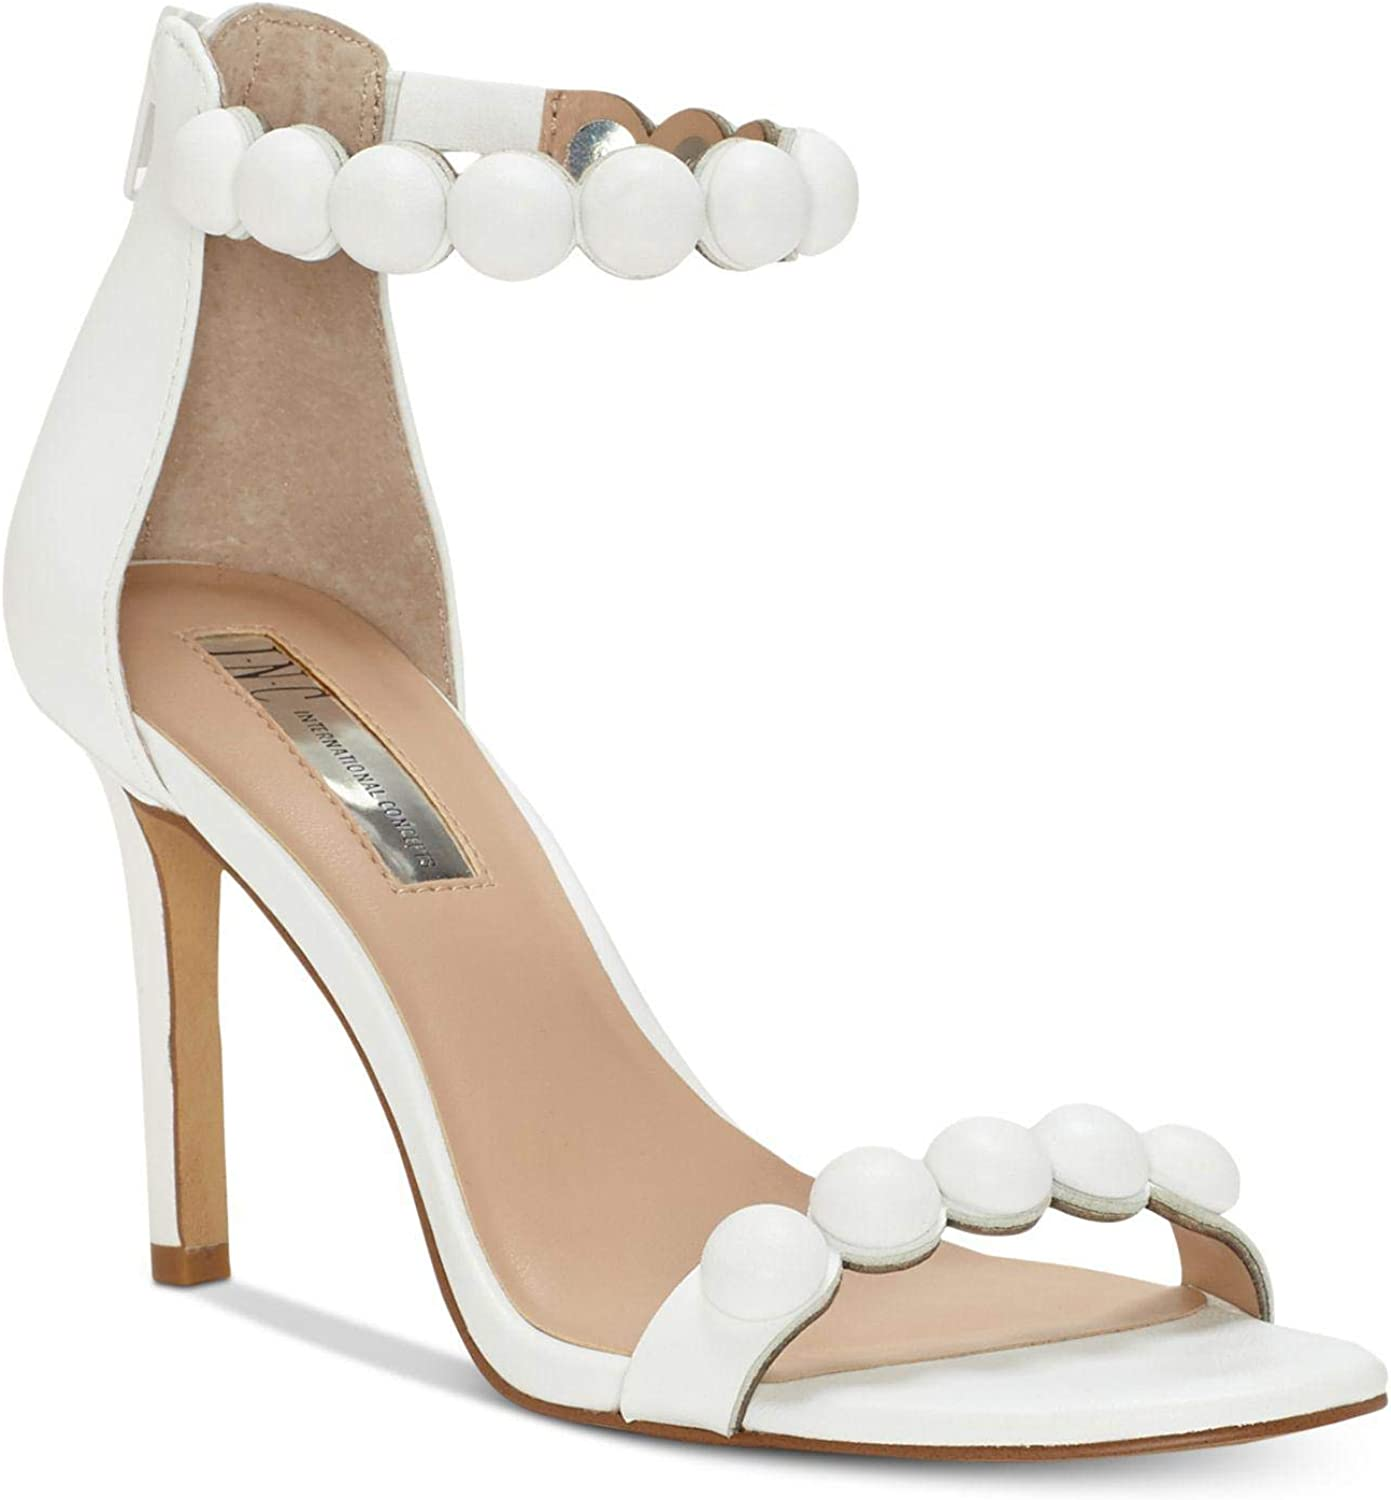 Inc Womens Gabbye Solid Ankle Strap Dress Sandals